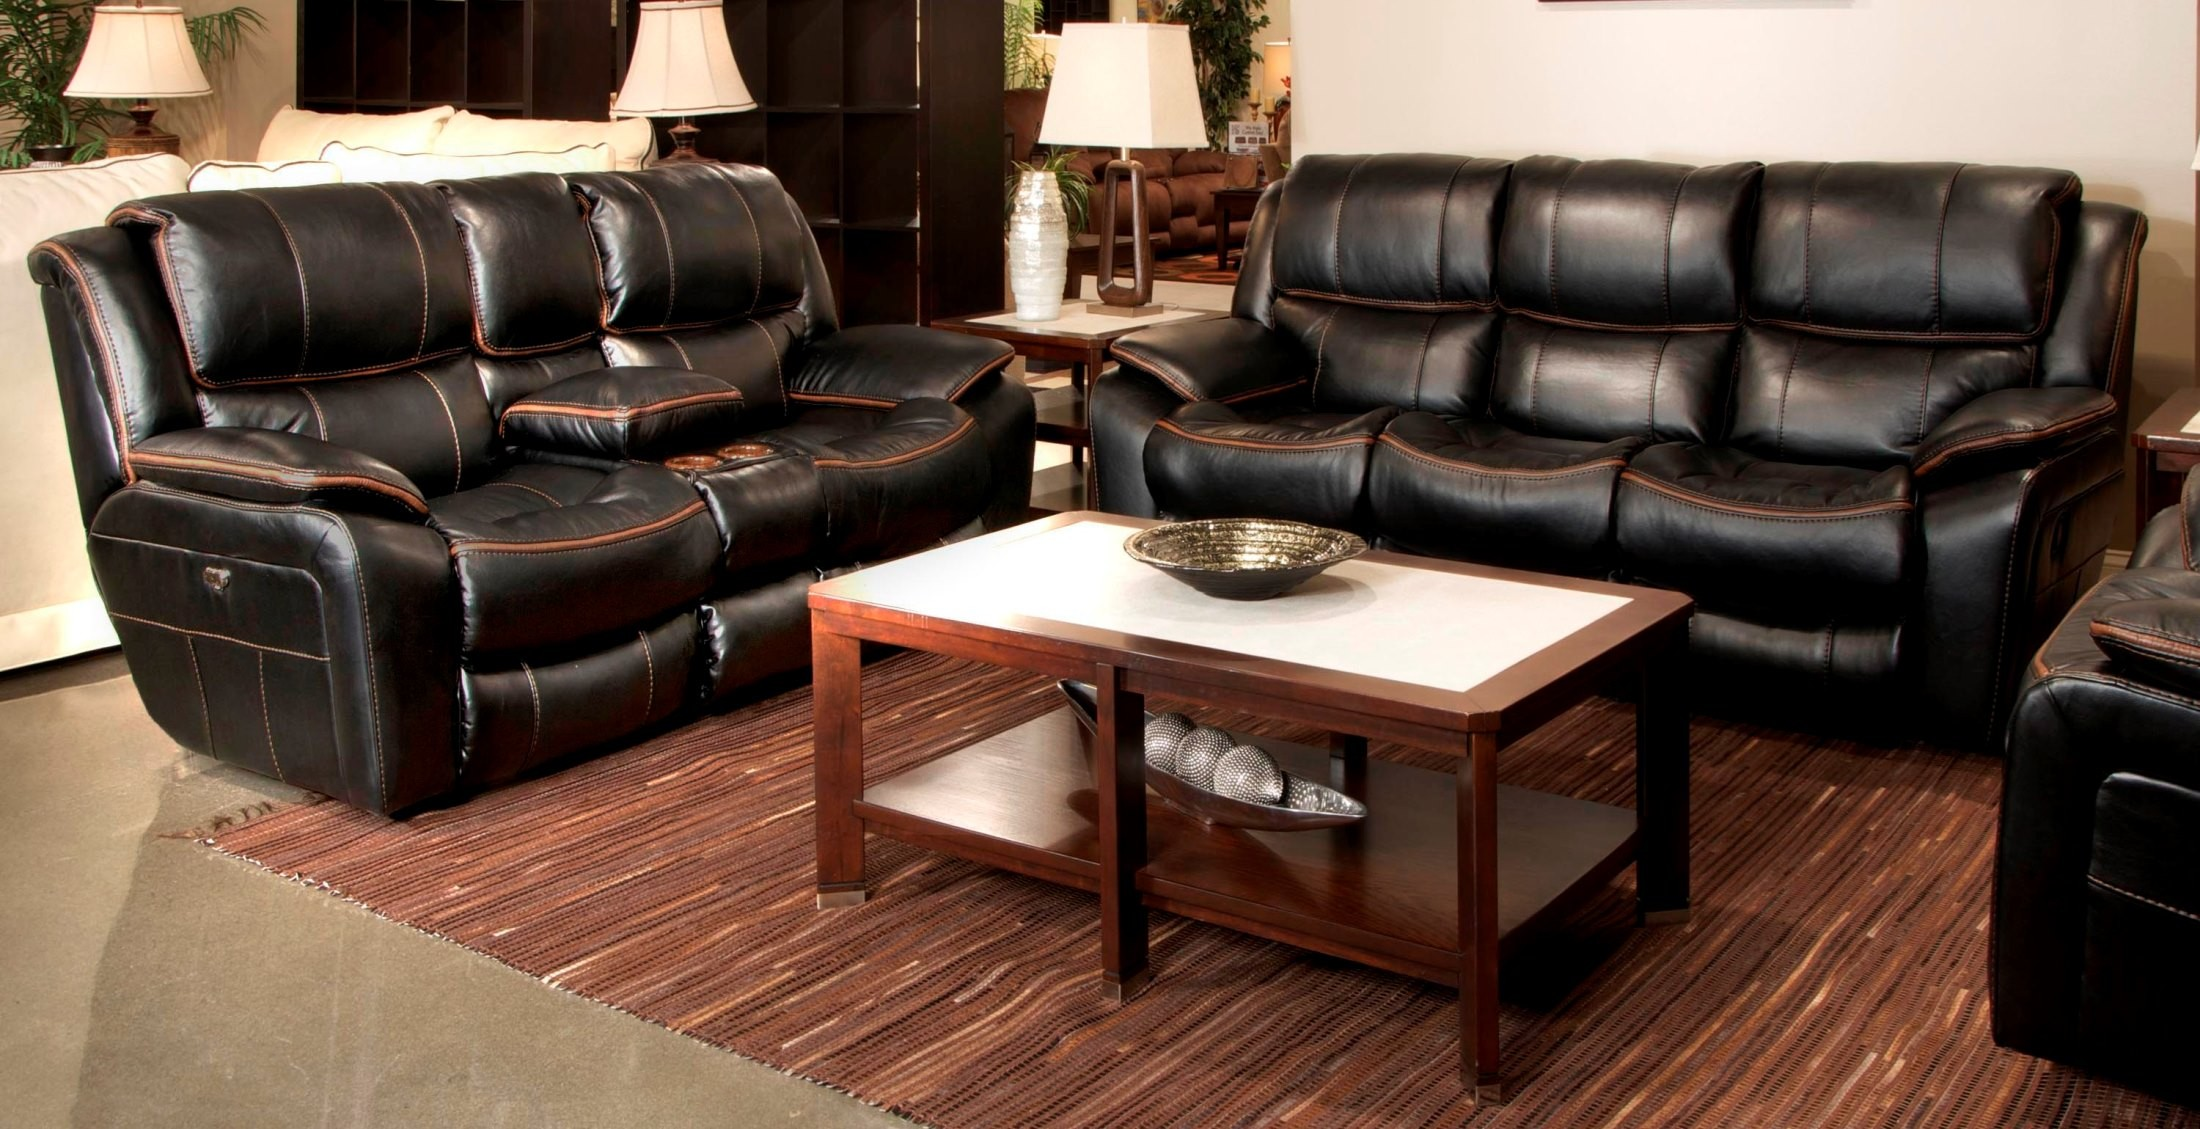 Reclining Living Room Sets Exceptional Designs Reclining Living Room Set In Chocolate Leather